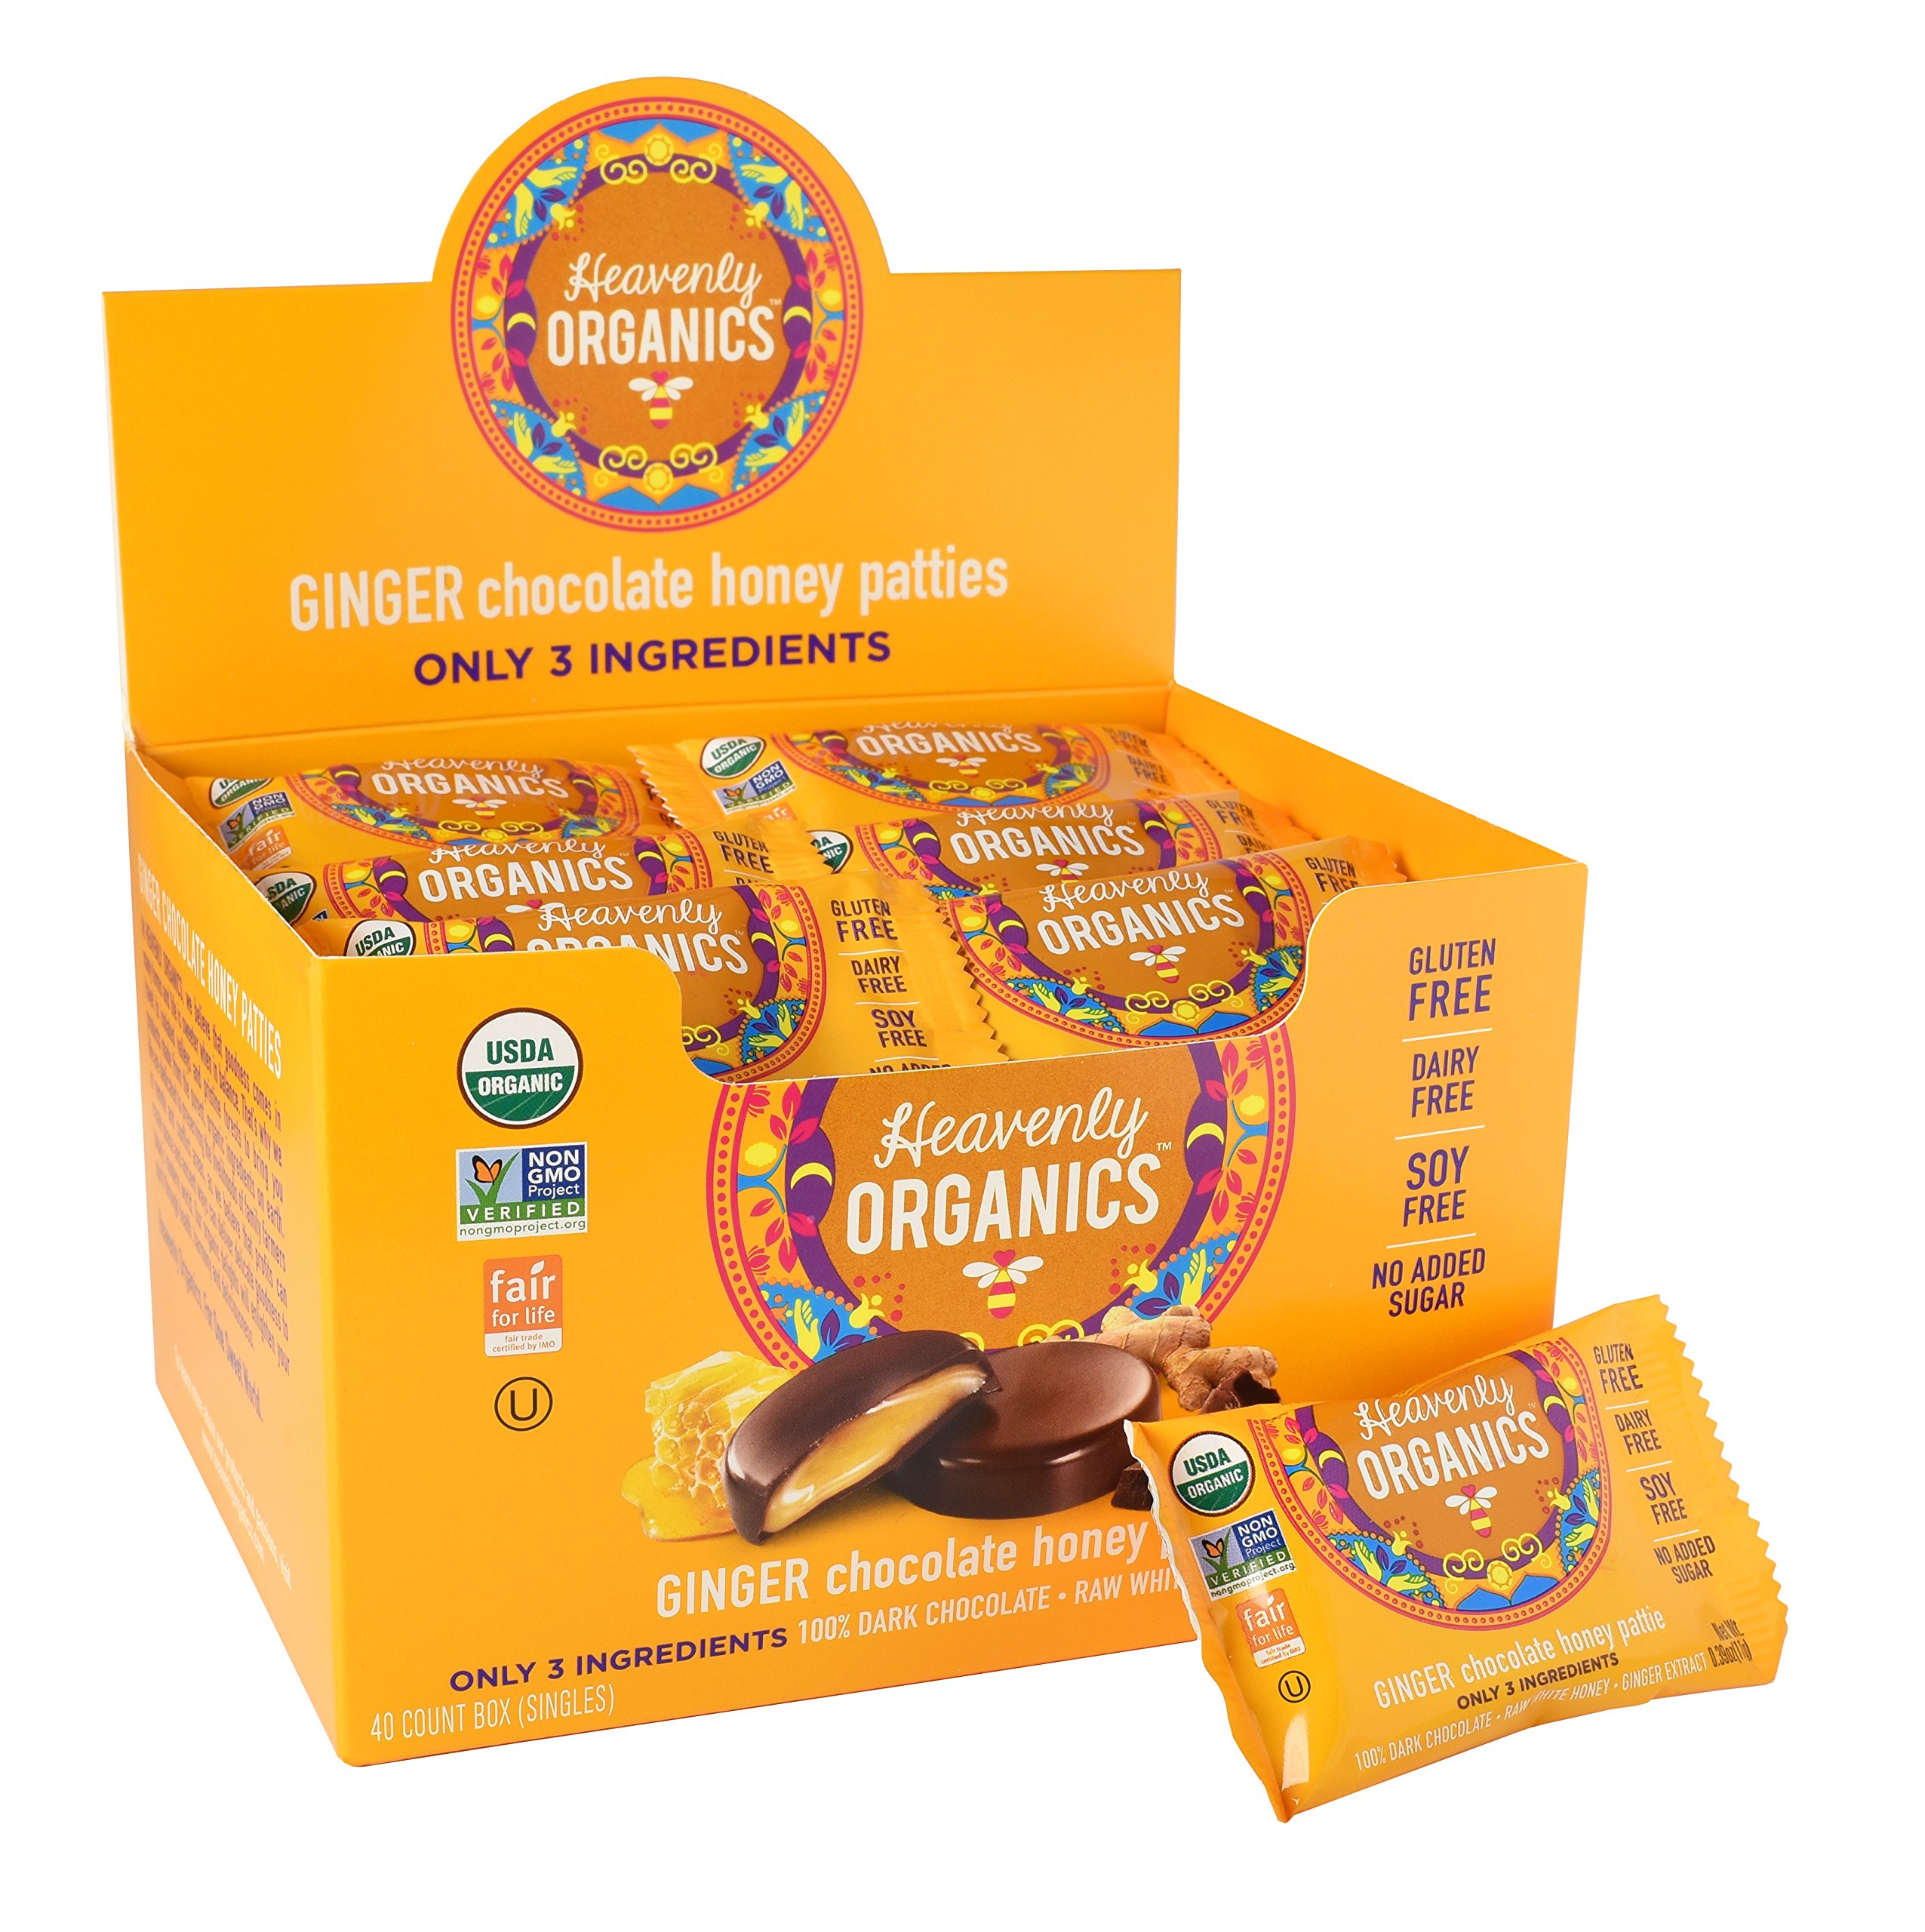 Heavenly Organics Honey Pattie, Chocolate Ginger, 40 Packages